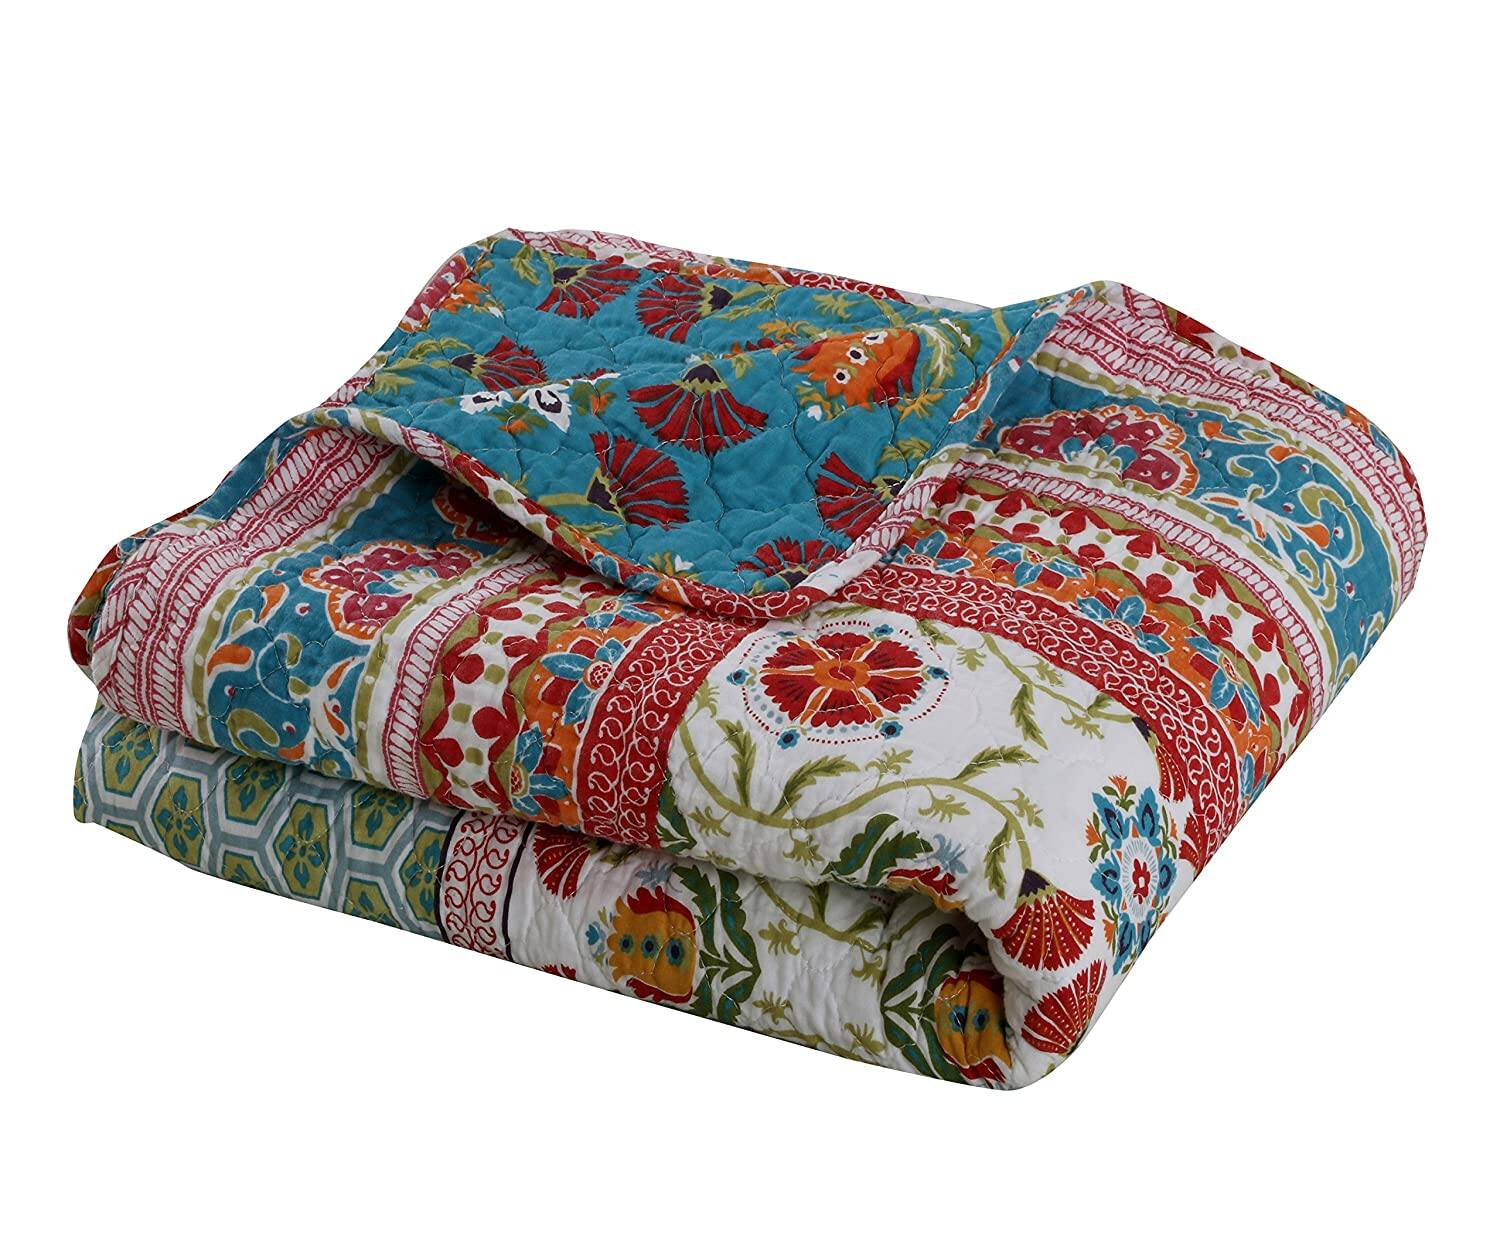 """60"""" x 50"""" Greenland Home Thalia Multi-colored Quilted Cotton Throw $39 + Free shipping"""